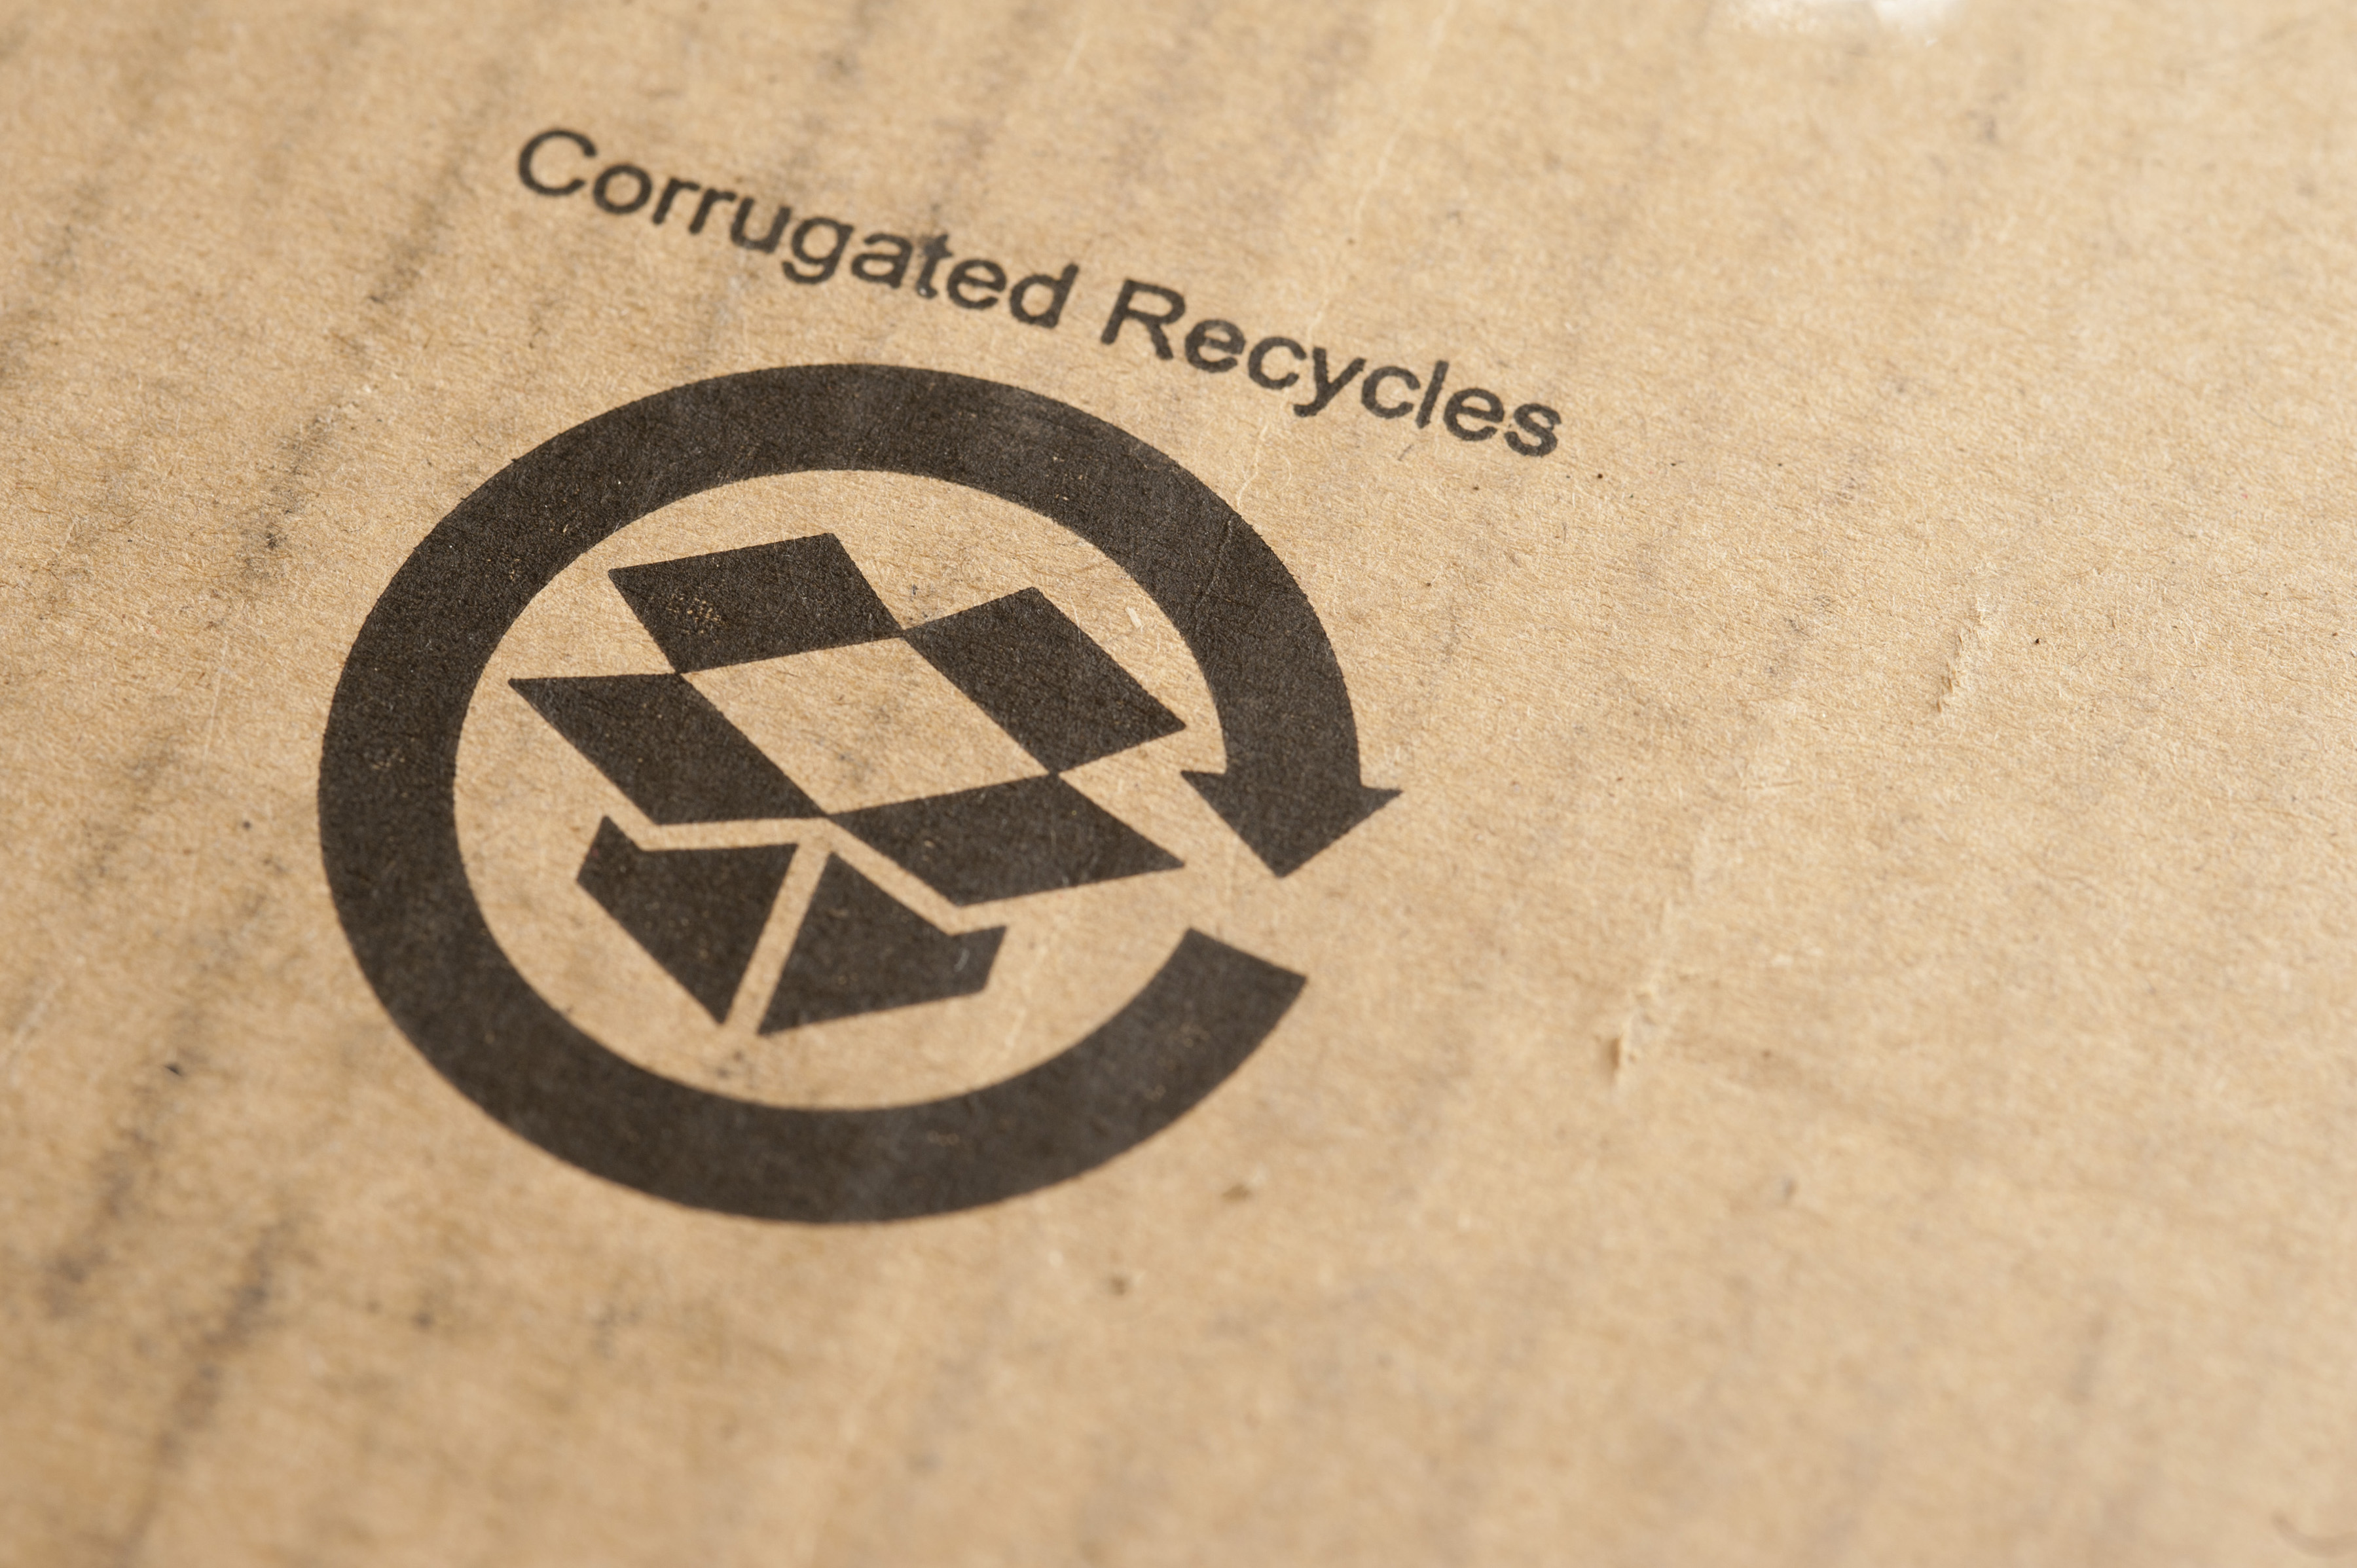 Recycled sign stamped on a cardboard packaging box or carton with the text - Corrugated Recycles - in an environmental concept